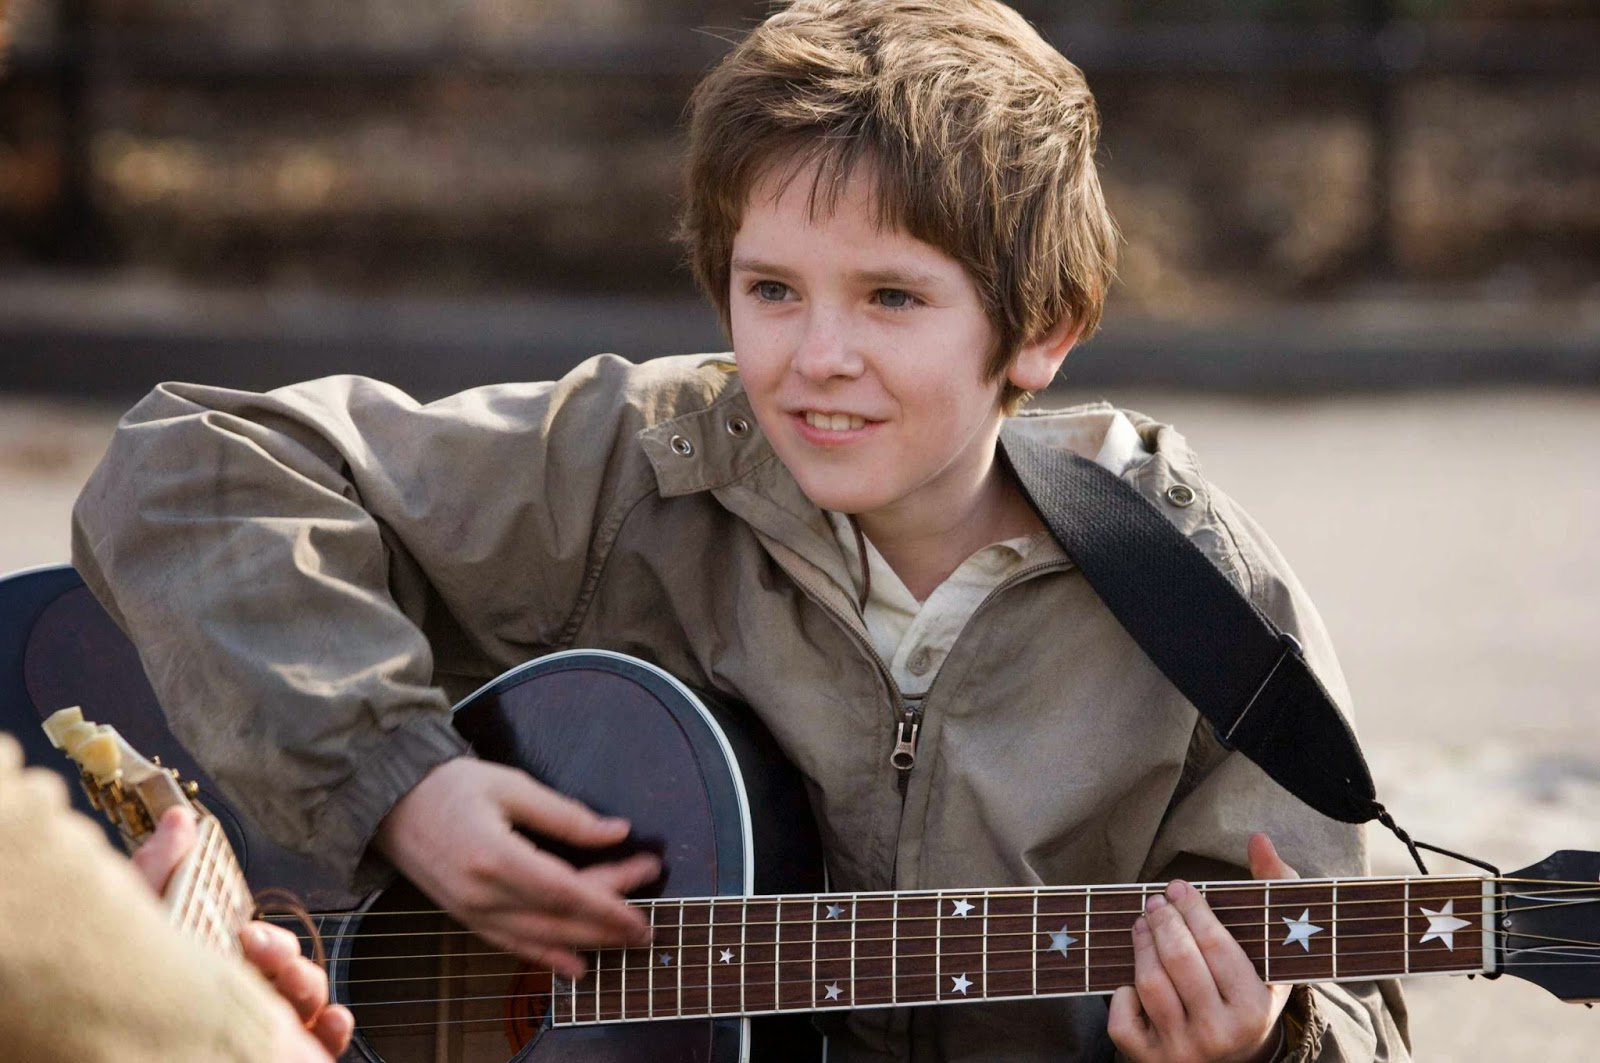 August Rush 2007 English Christian Movie HD video